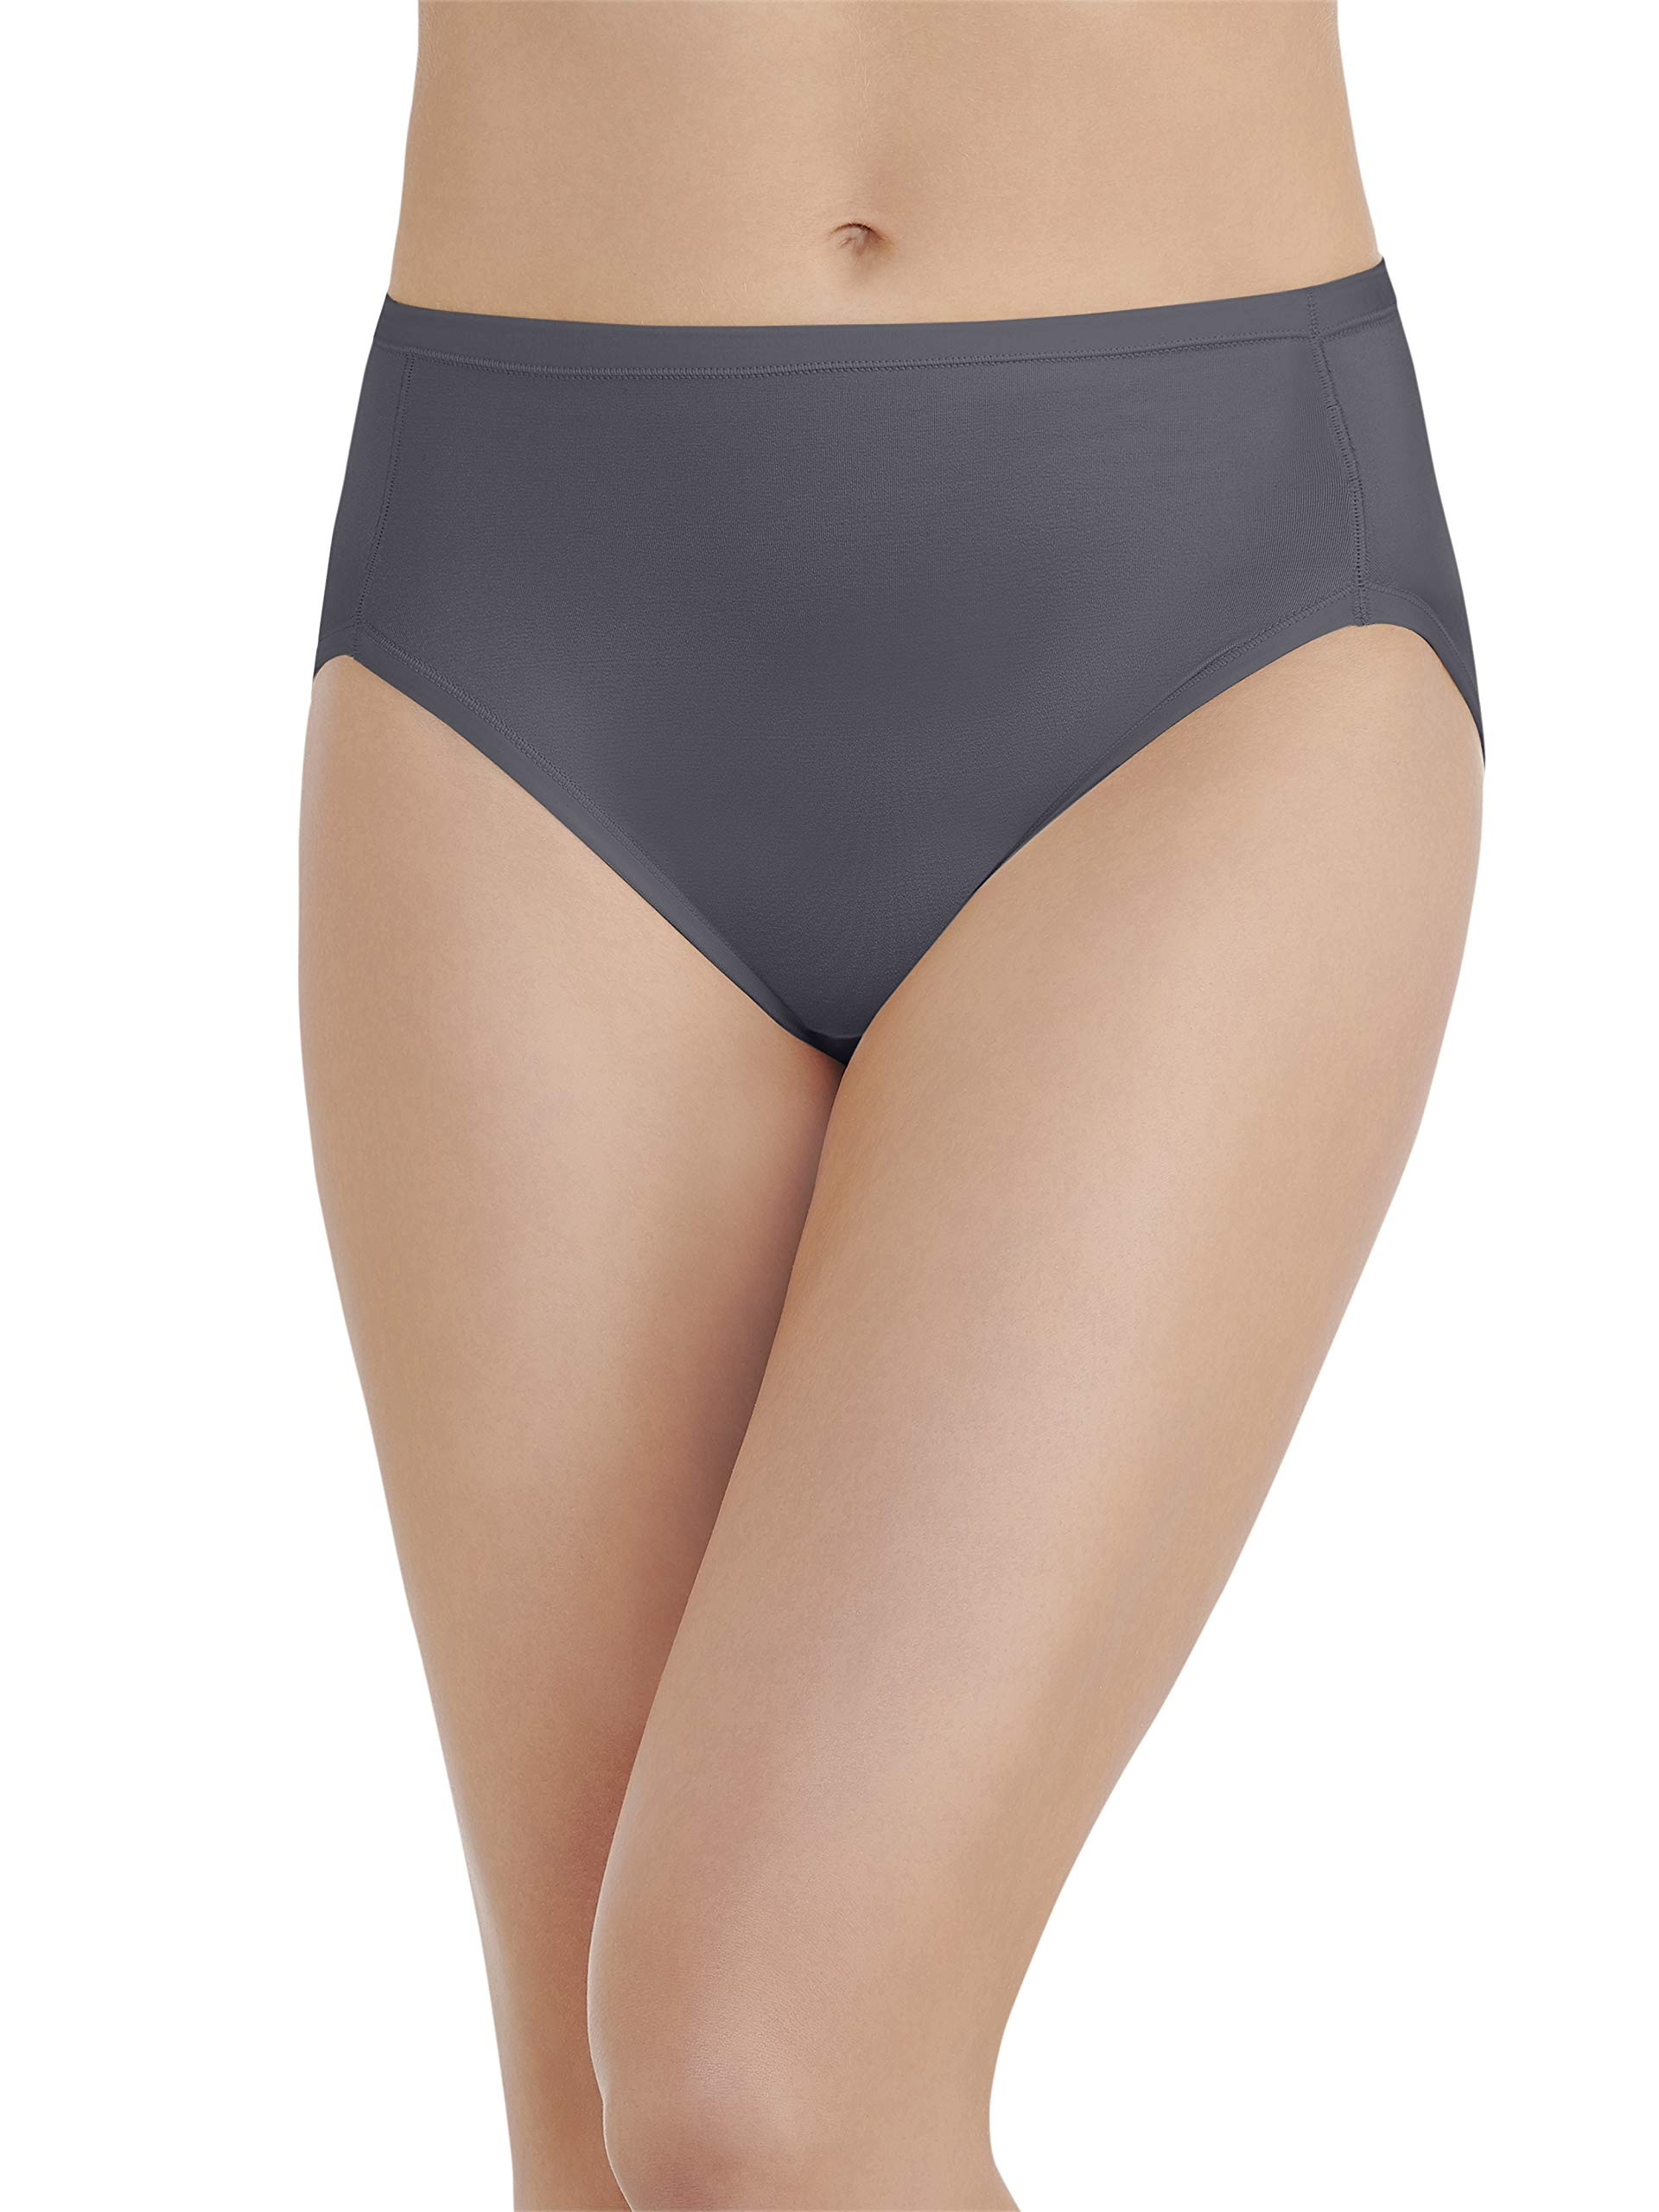 Vanity Fair Women's Body Caress Hi Cut Panty 13137